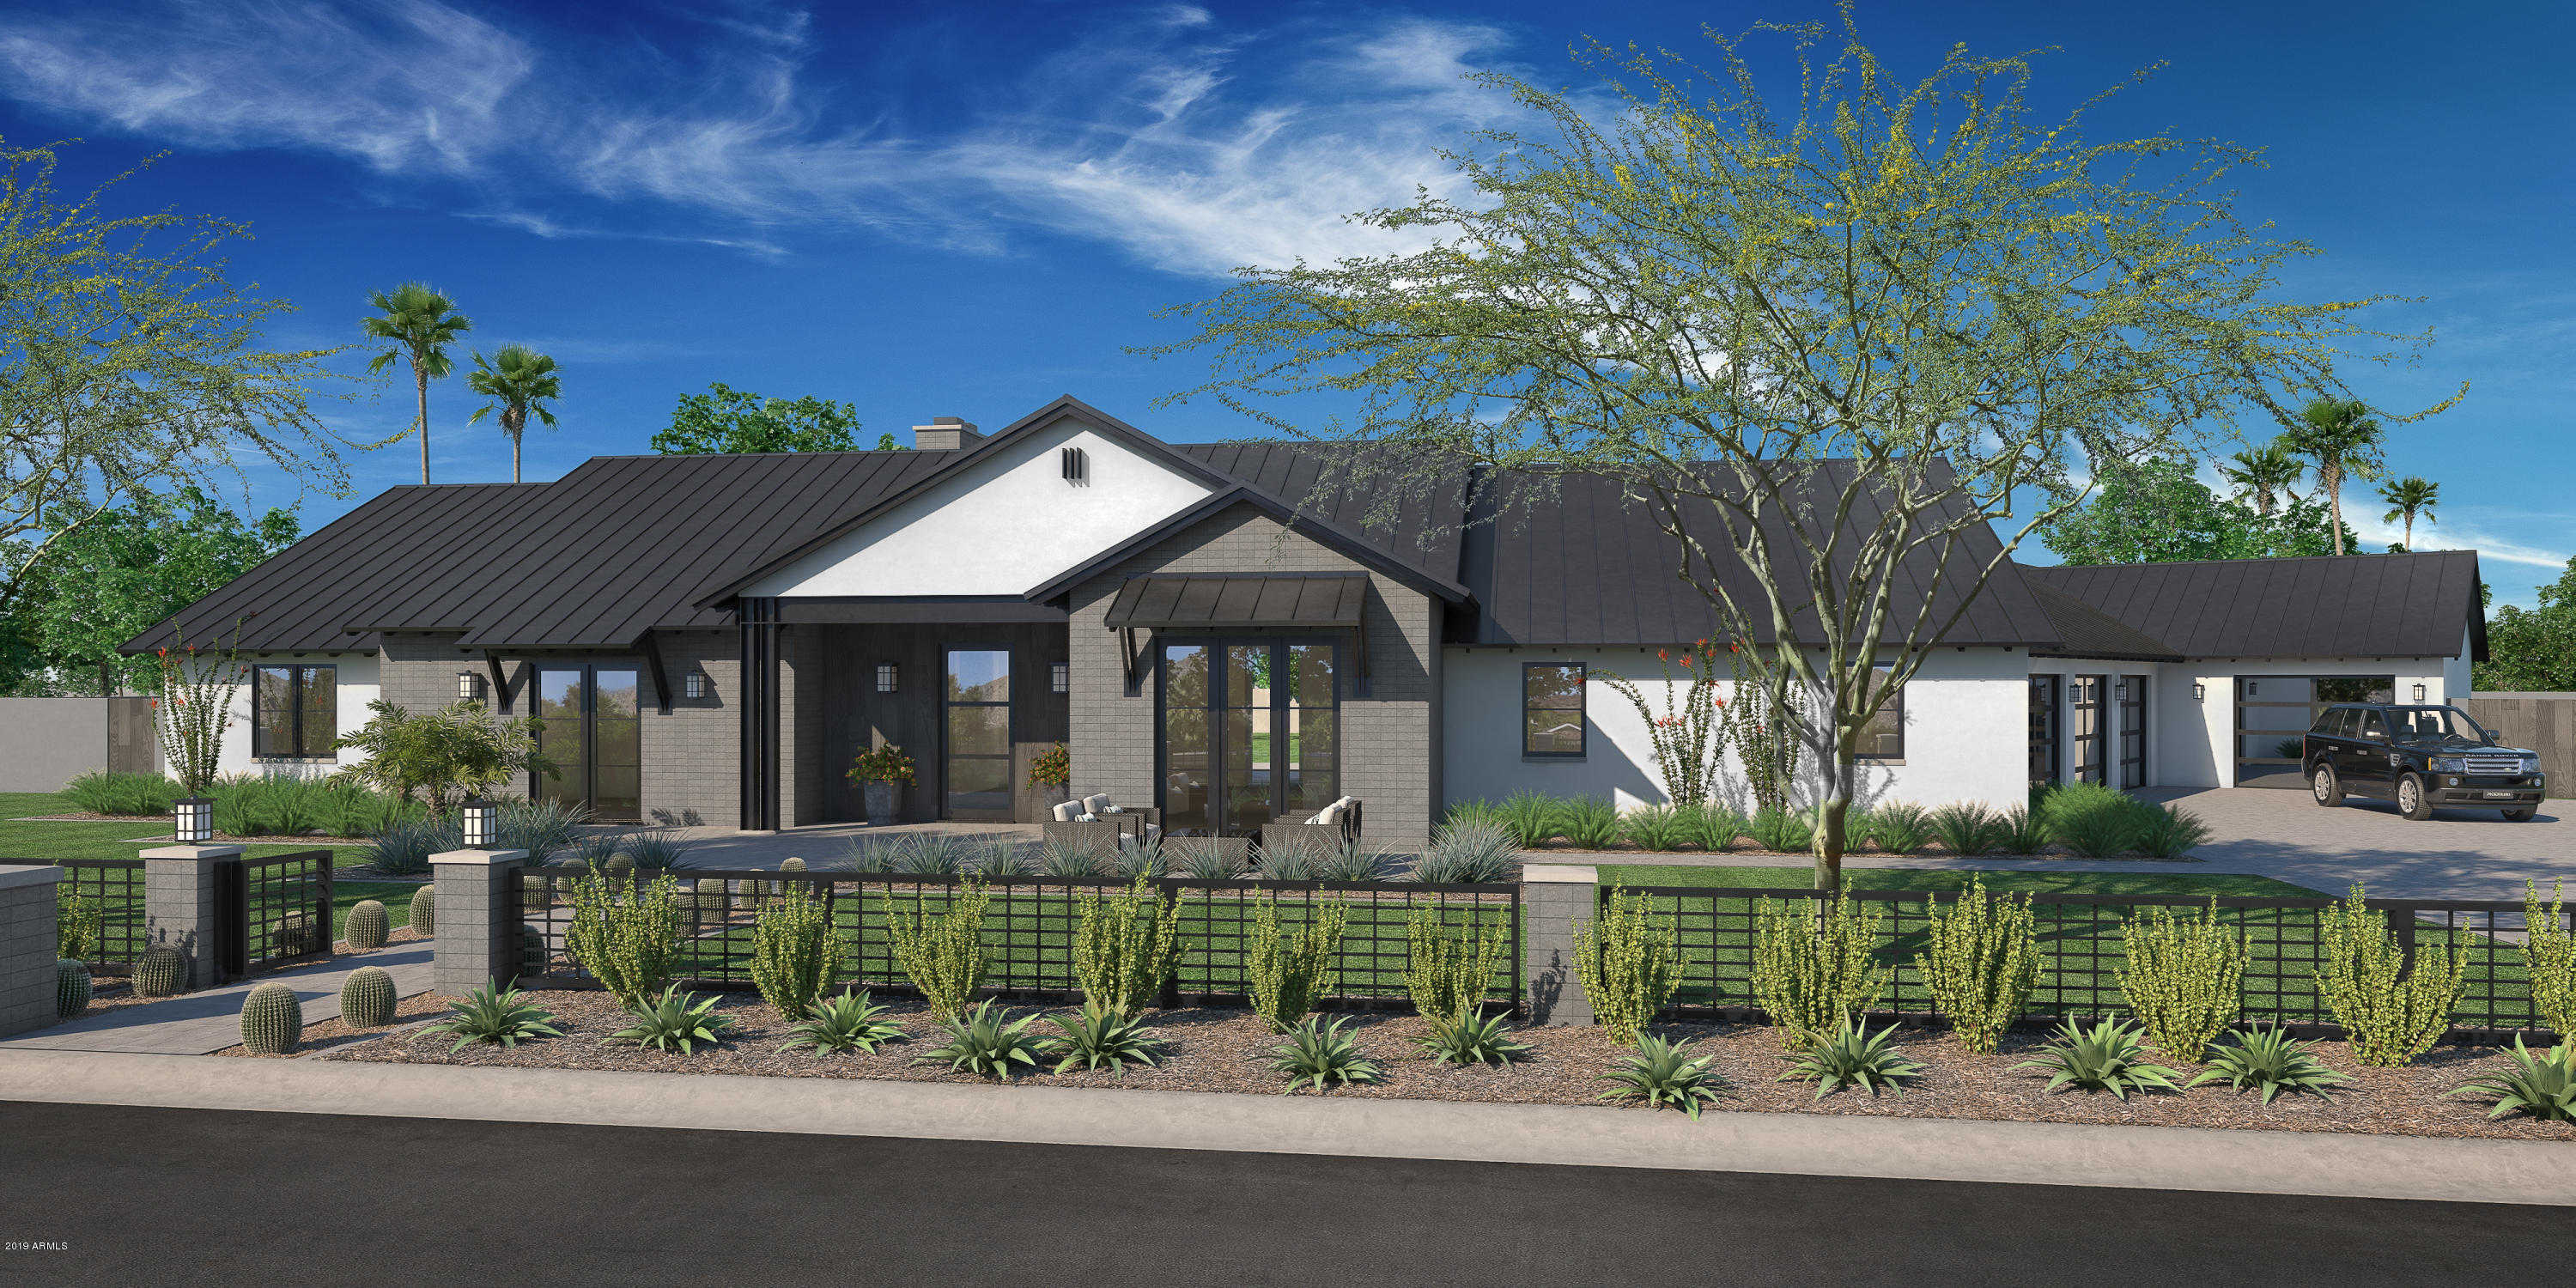 $3,595,000 - 5Br/6Ba - Home for Sale in Unknown, Phoenix